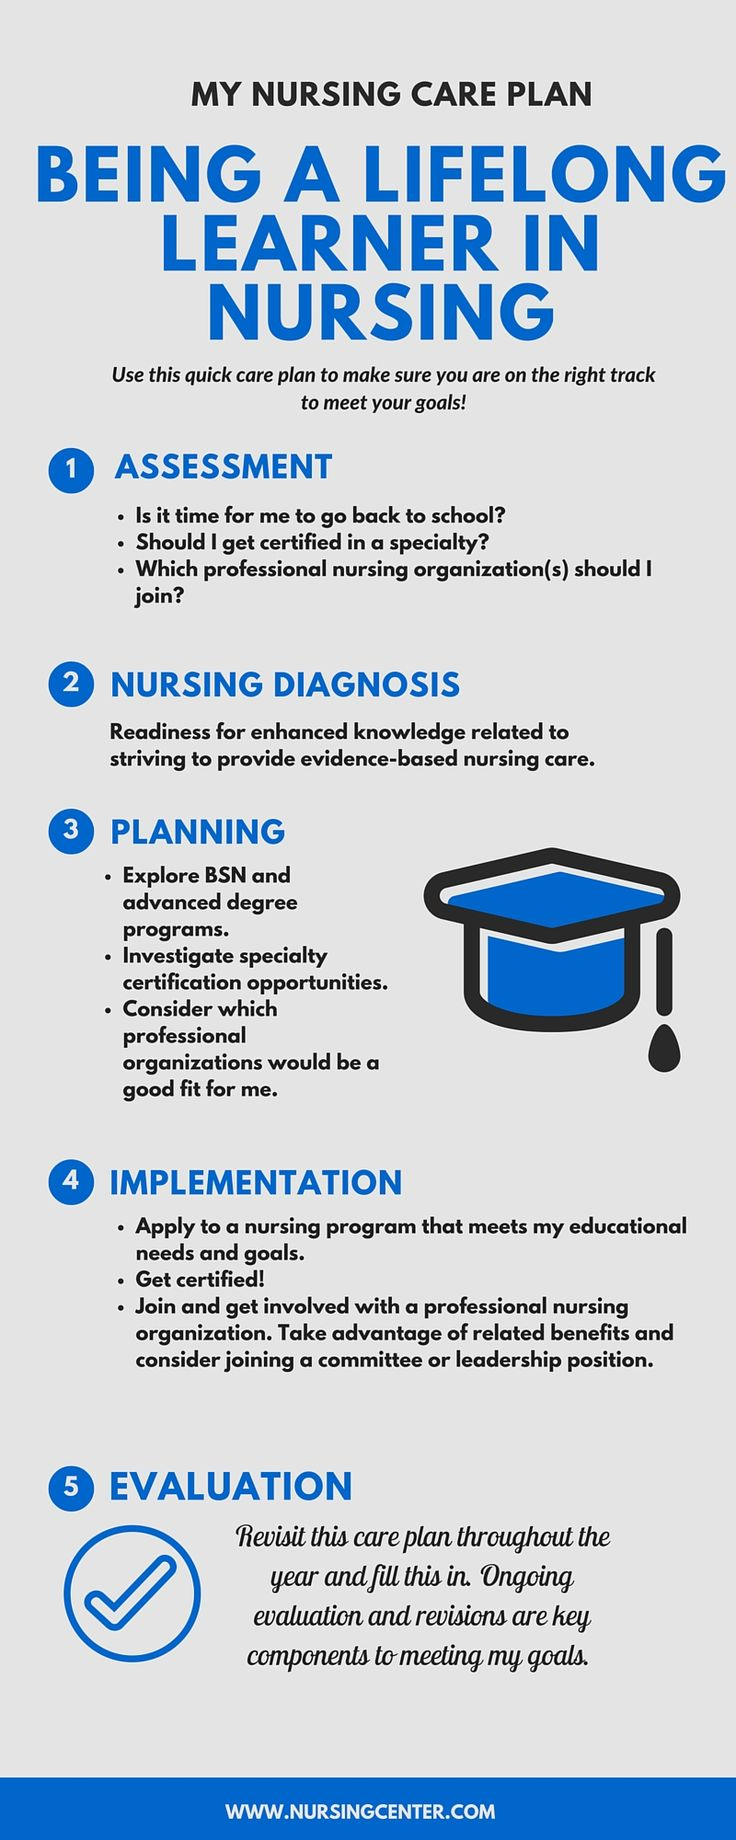 best ideas about evidence based nursing nursing lifelong learning is essential for your professional development and to ensure evidence based patient care